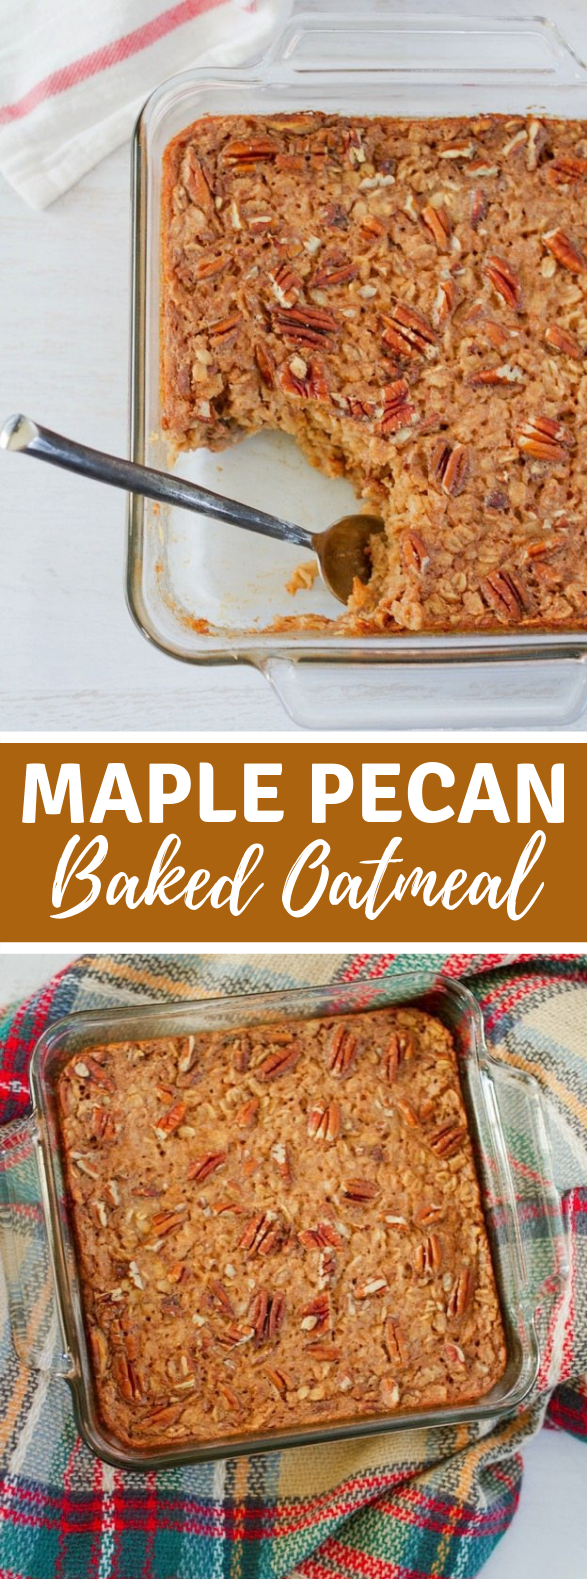 Maple Pecan Baked Oatmeal #brunch #breakfast